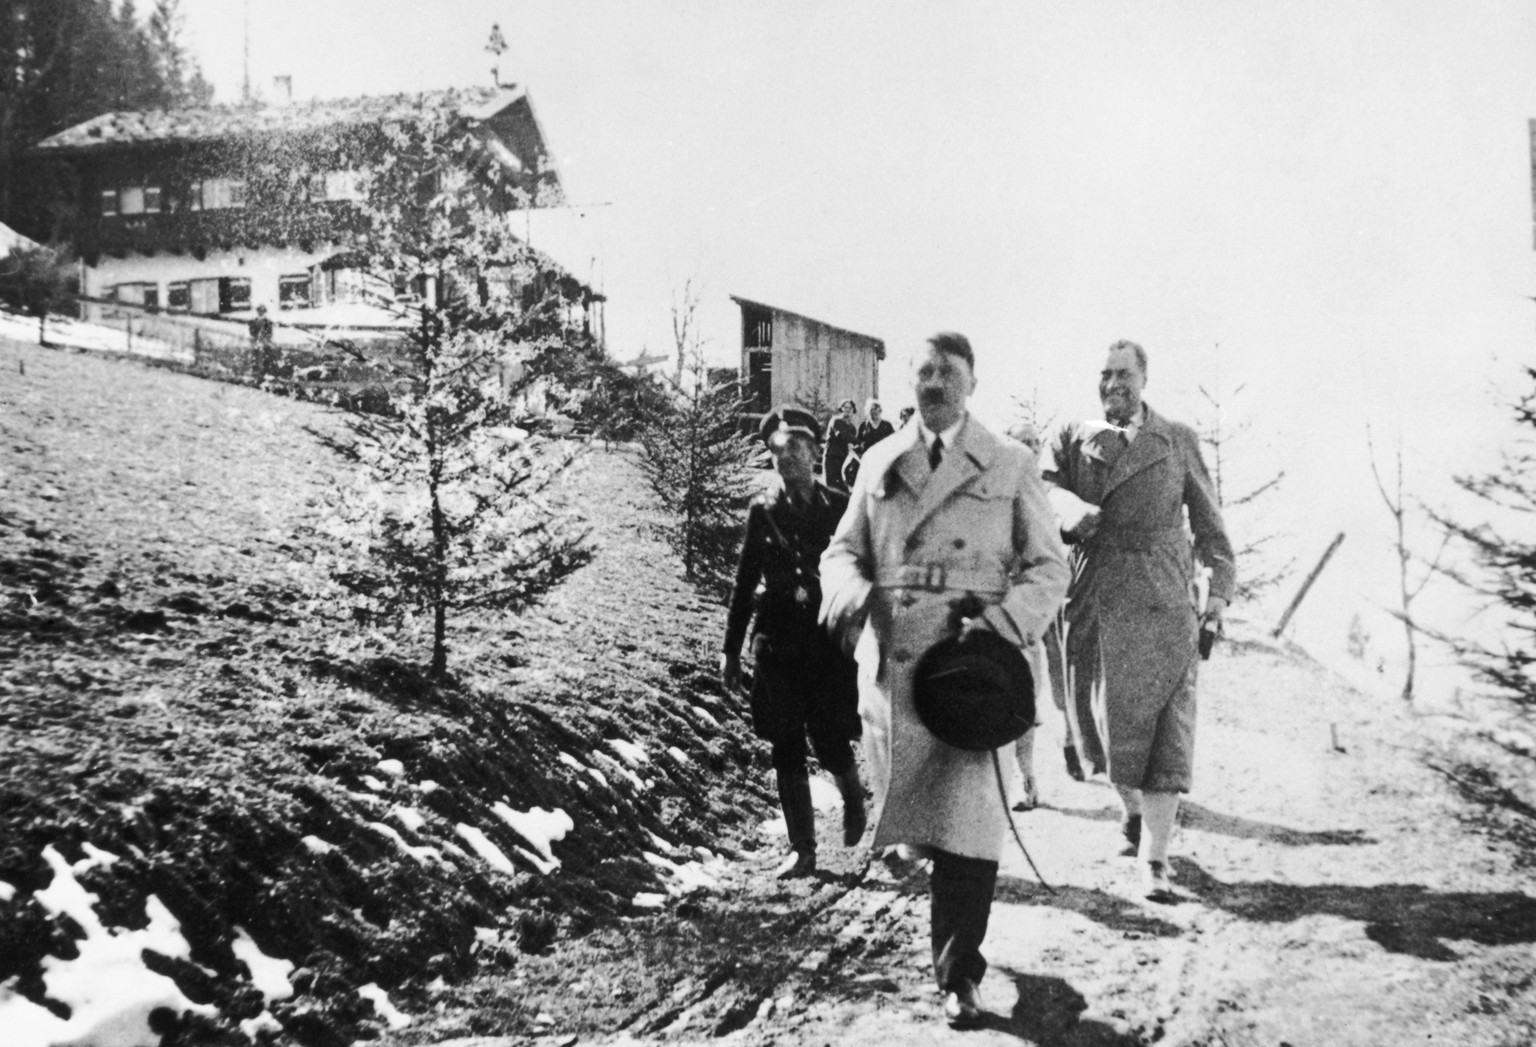 Adolf Hitler outside the Berghof, his country retreat in the Obersalzberg of the Bavarian Alps, with Friedrich Bruckner in the background, circa 1944. (Photo by Popperfoto/Getty Images)